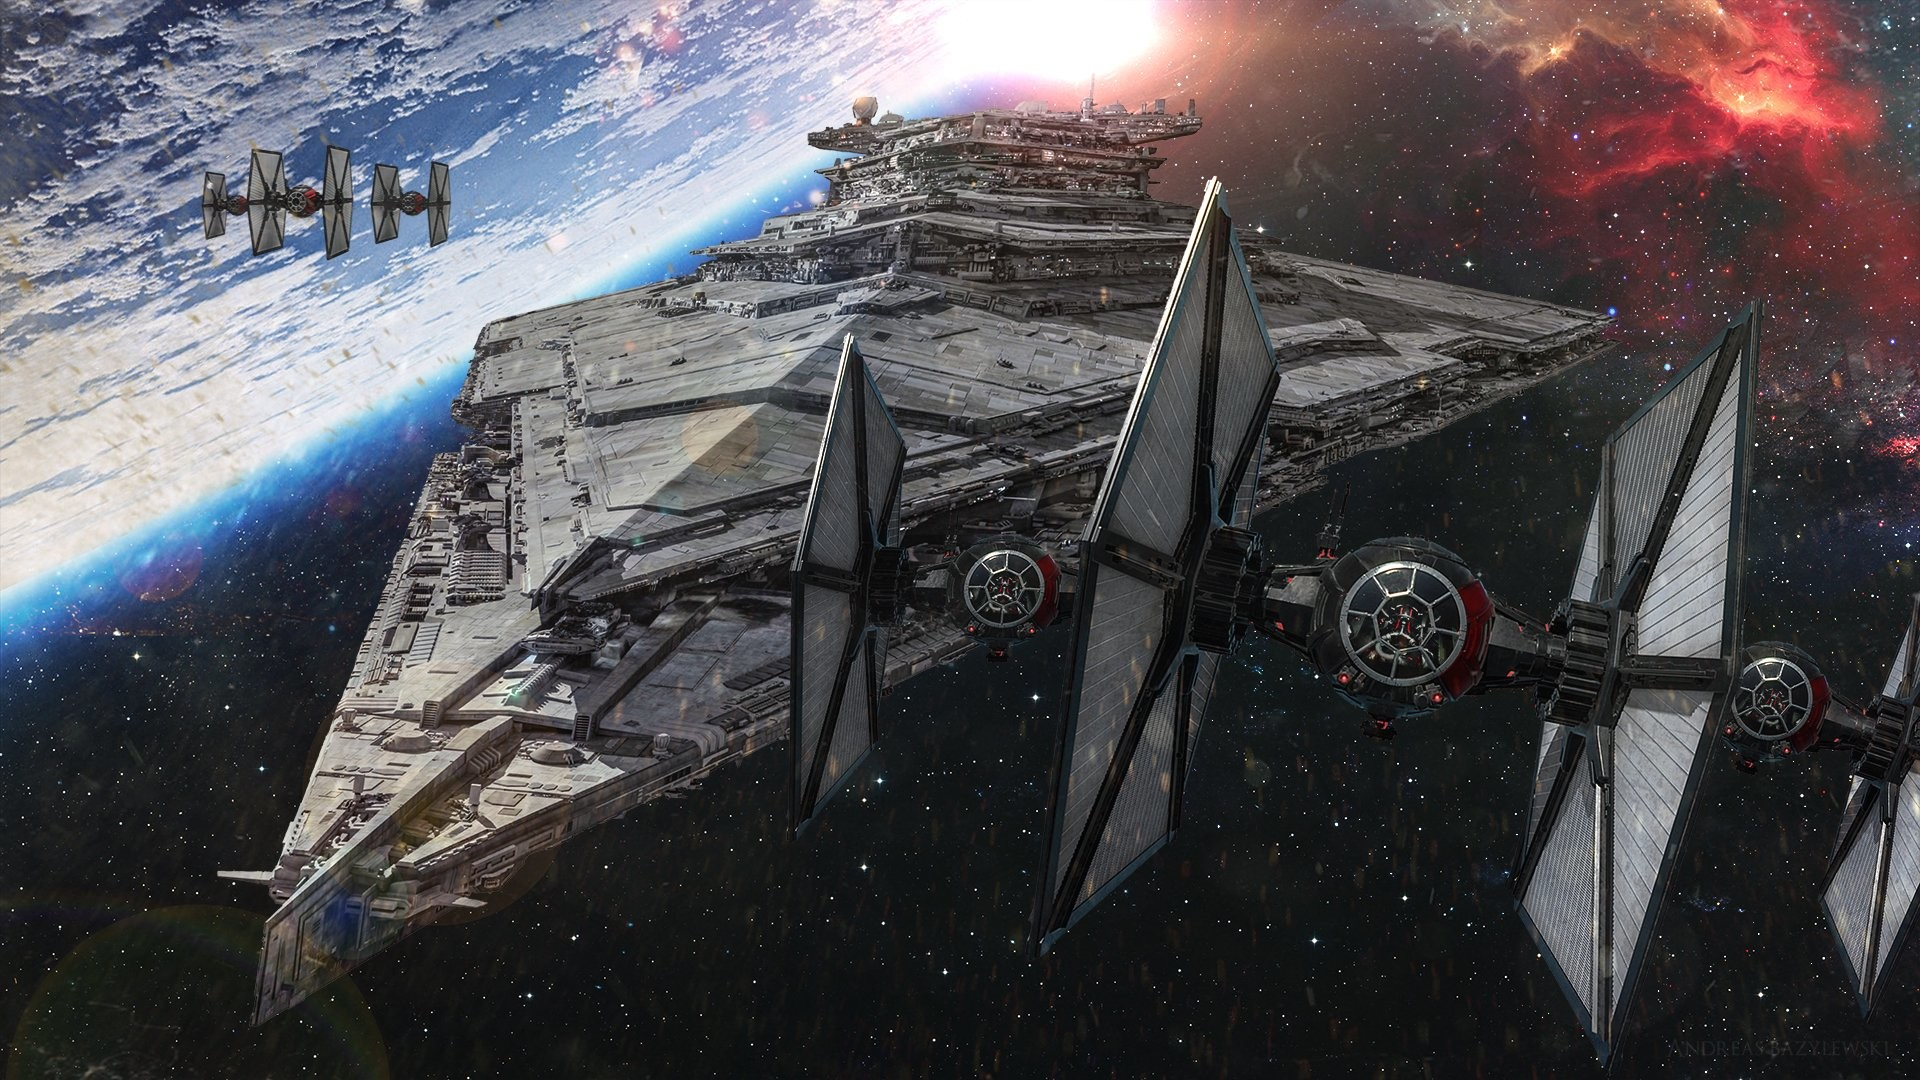 Star Wars Wallpapers Mobile for Wallpaper Background x px | HD Wallpapers |  Pinterest | Wallpaper, Hd wallpaper and Wallpaper backgrounds